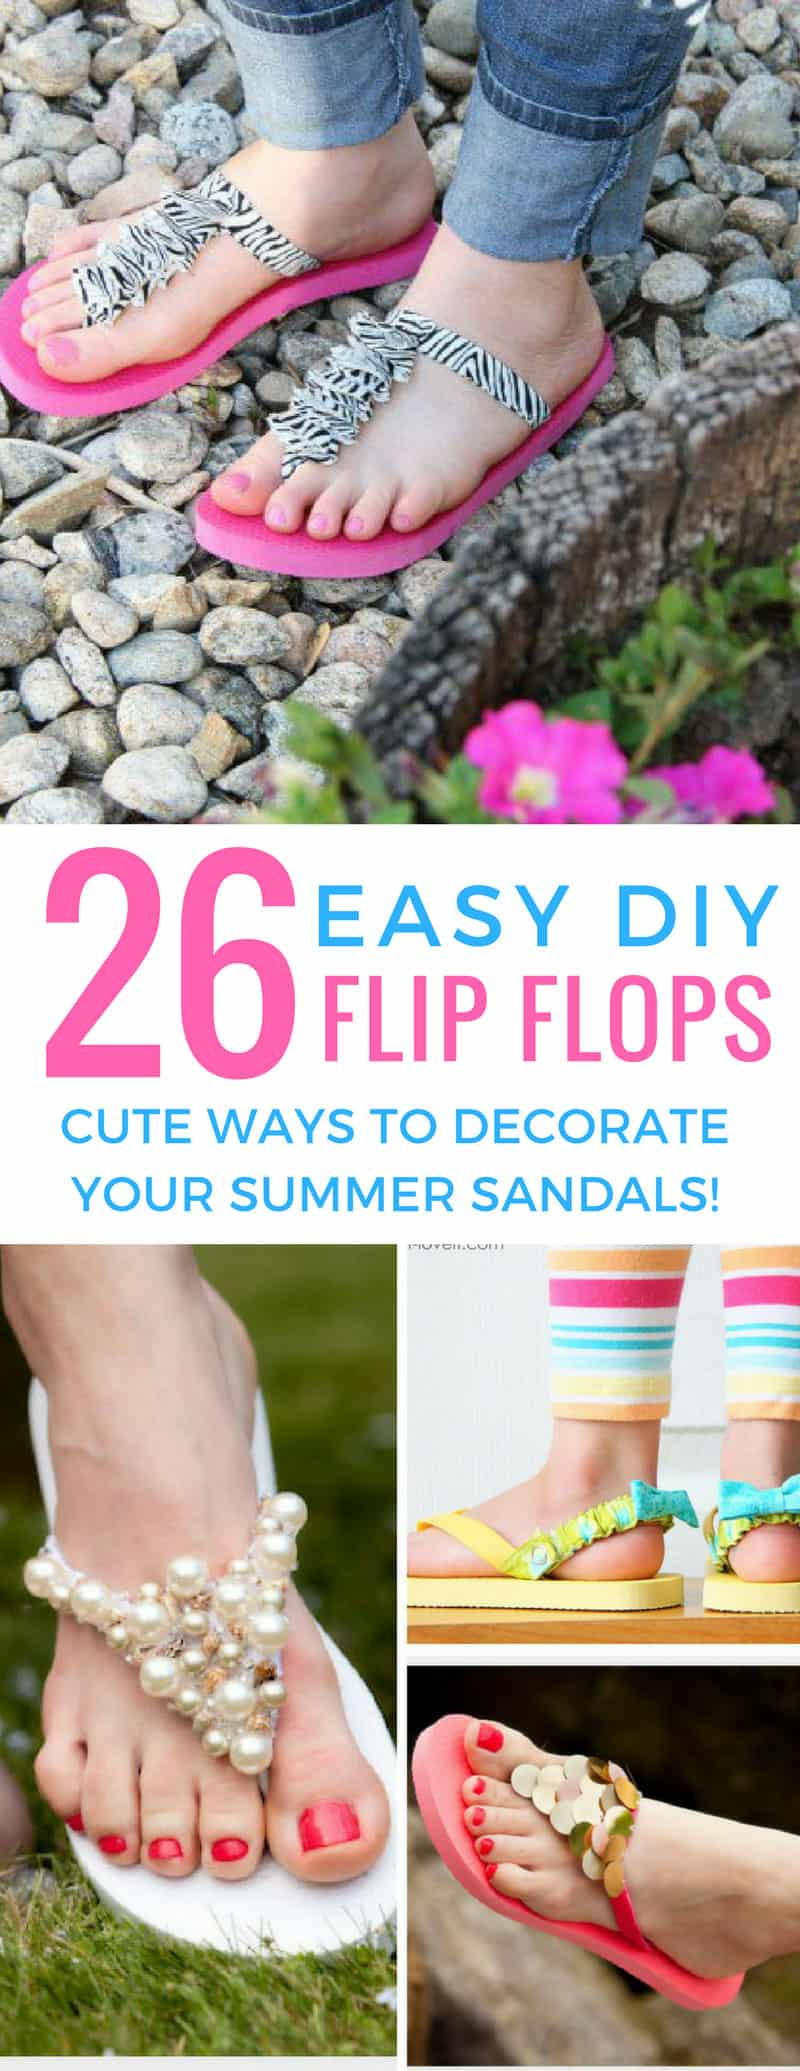 These easy DIY flip flop ideas are perfect for making summer sandals that look great! Thanks for sharing!